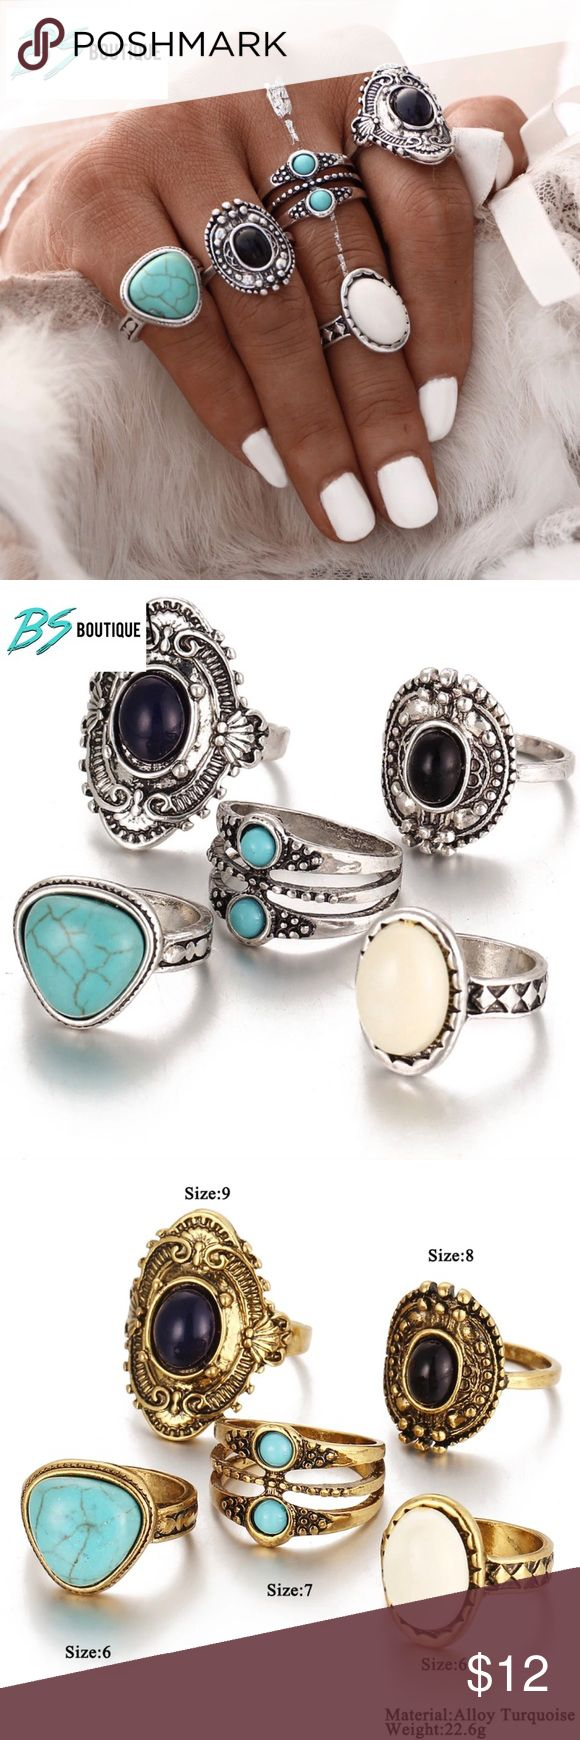 LAST SET 5 Pc Silver Turquoise Boho Rings Midi LAST SET 5 PCS- SILVER ONLY    BRAND NEW  All items arrive adorably gift wrapped.   Simply bundle your items & save   WHILE SUPPLIES LAST  Thanks for your support & enjoy!   TAGS ONLY: NOT: Nasty Gal Victoria's Secret Ulta Sephora MAC H&M Lululemon Francesca's kate spade J. Crew Kardashian Free People Juicy Stella & Dot Smashbox Anthropology Urban Outfitters follow game Kylie contour classy trending deal sale stylish hot trend high fashion…